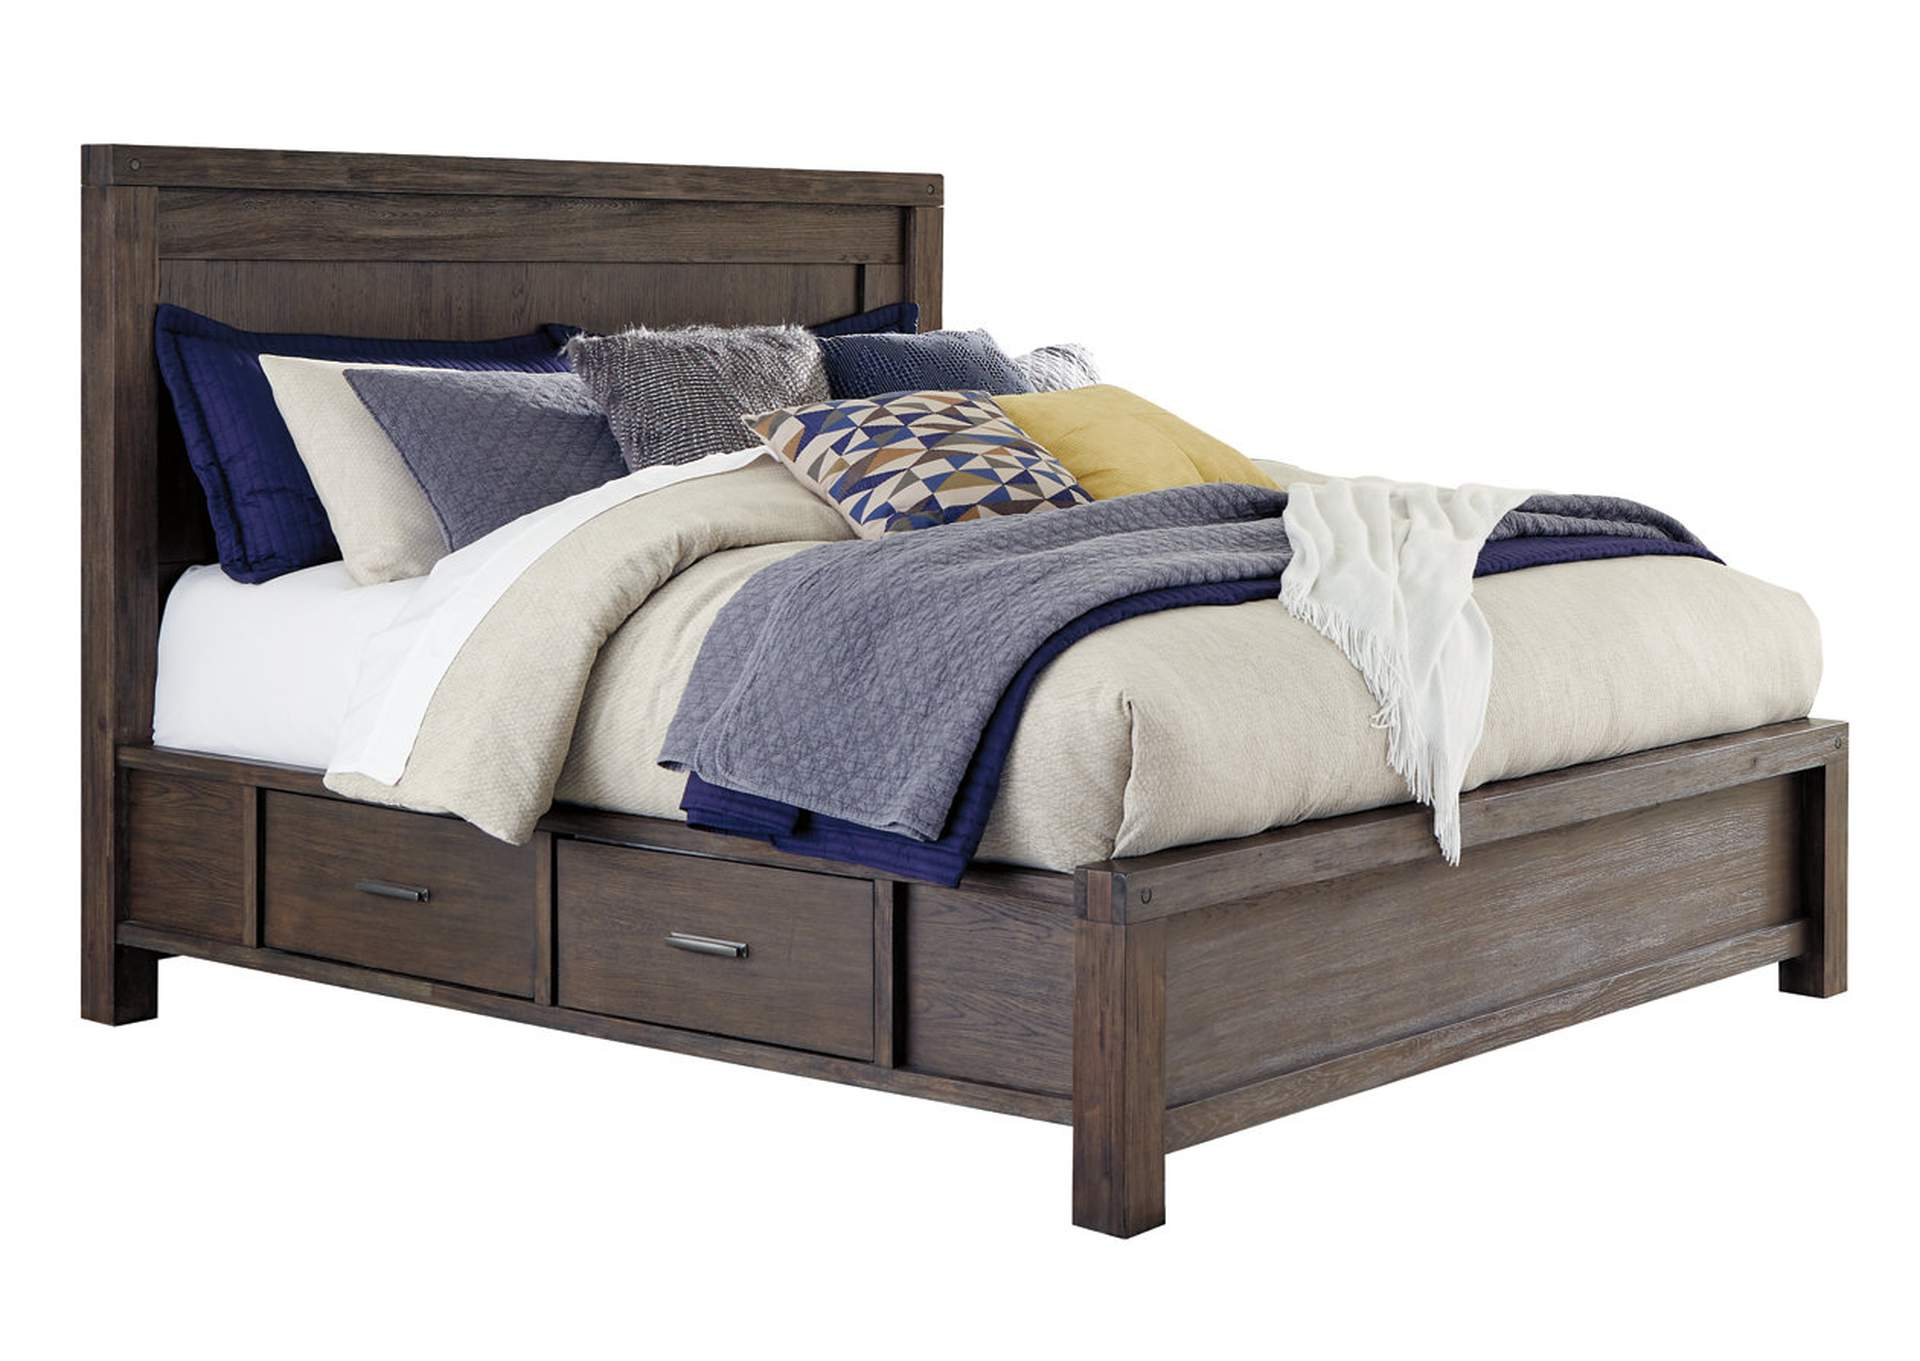 Dellbeck Dark Brown Storage Queen Bed,Millennium